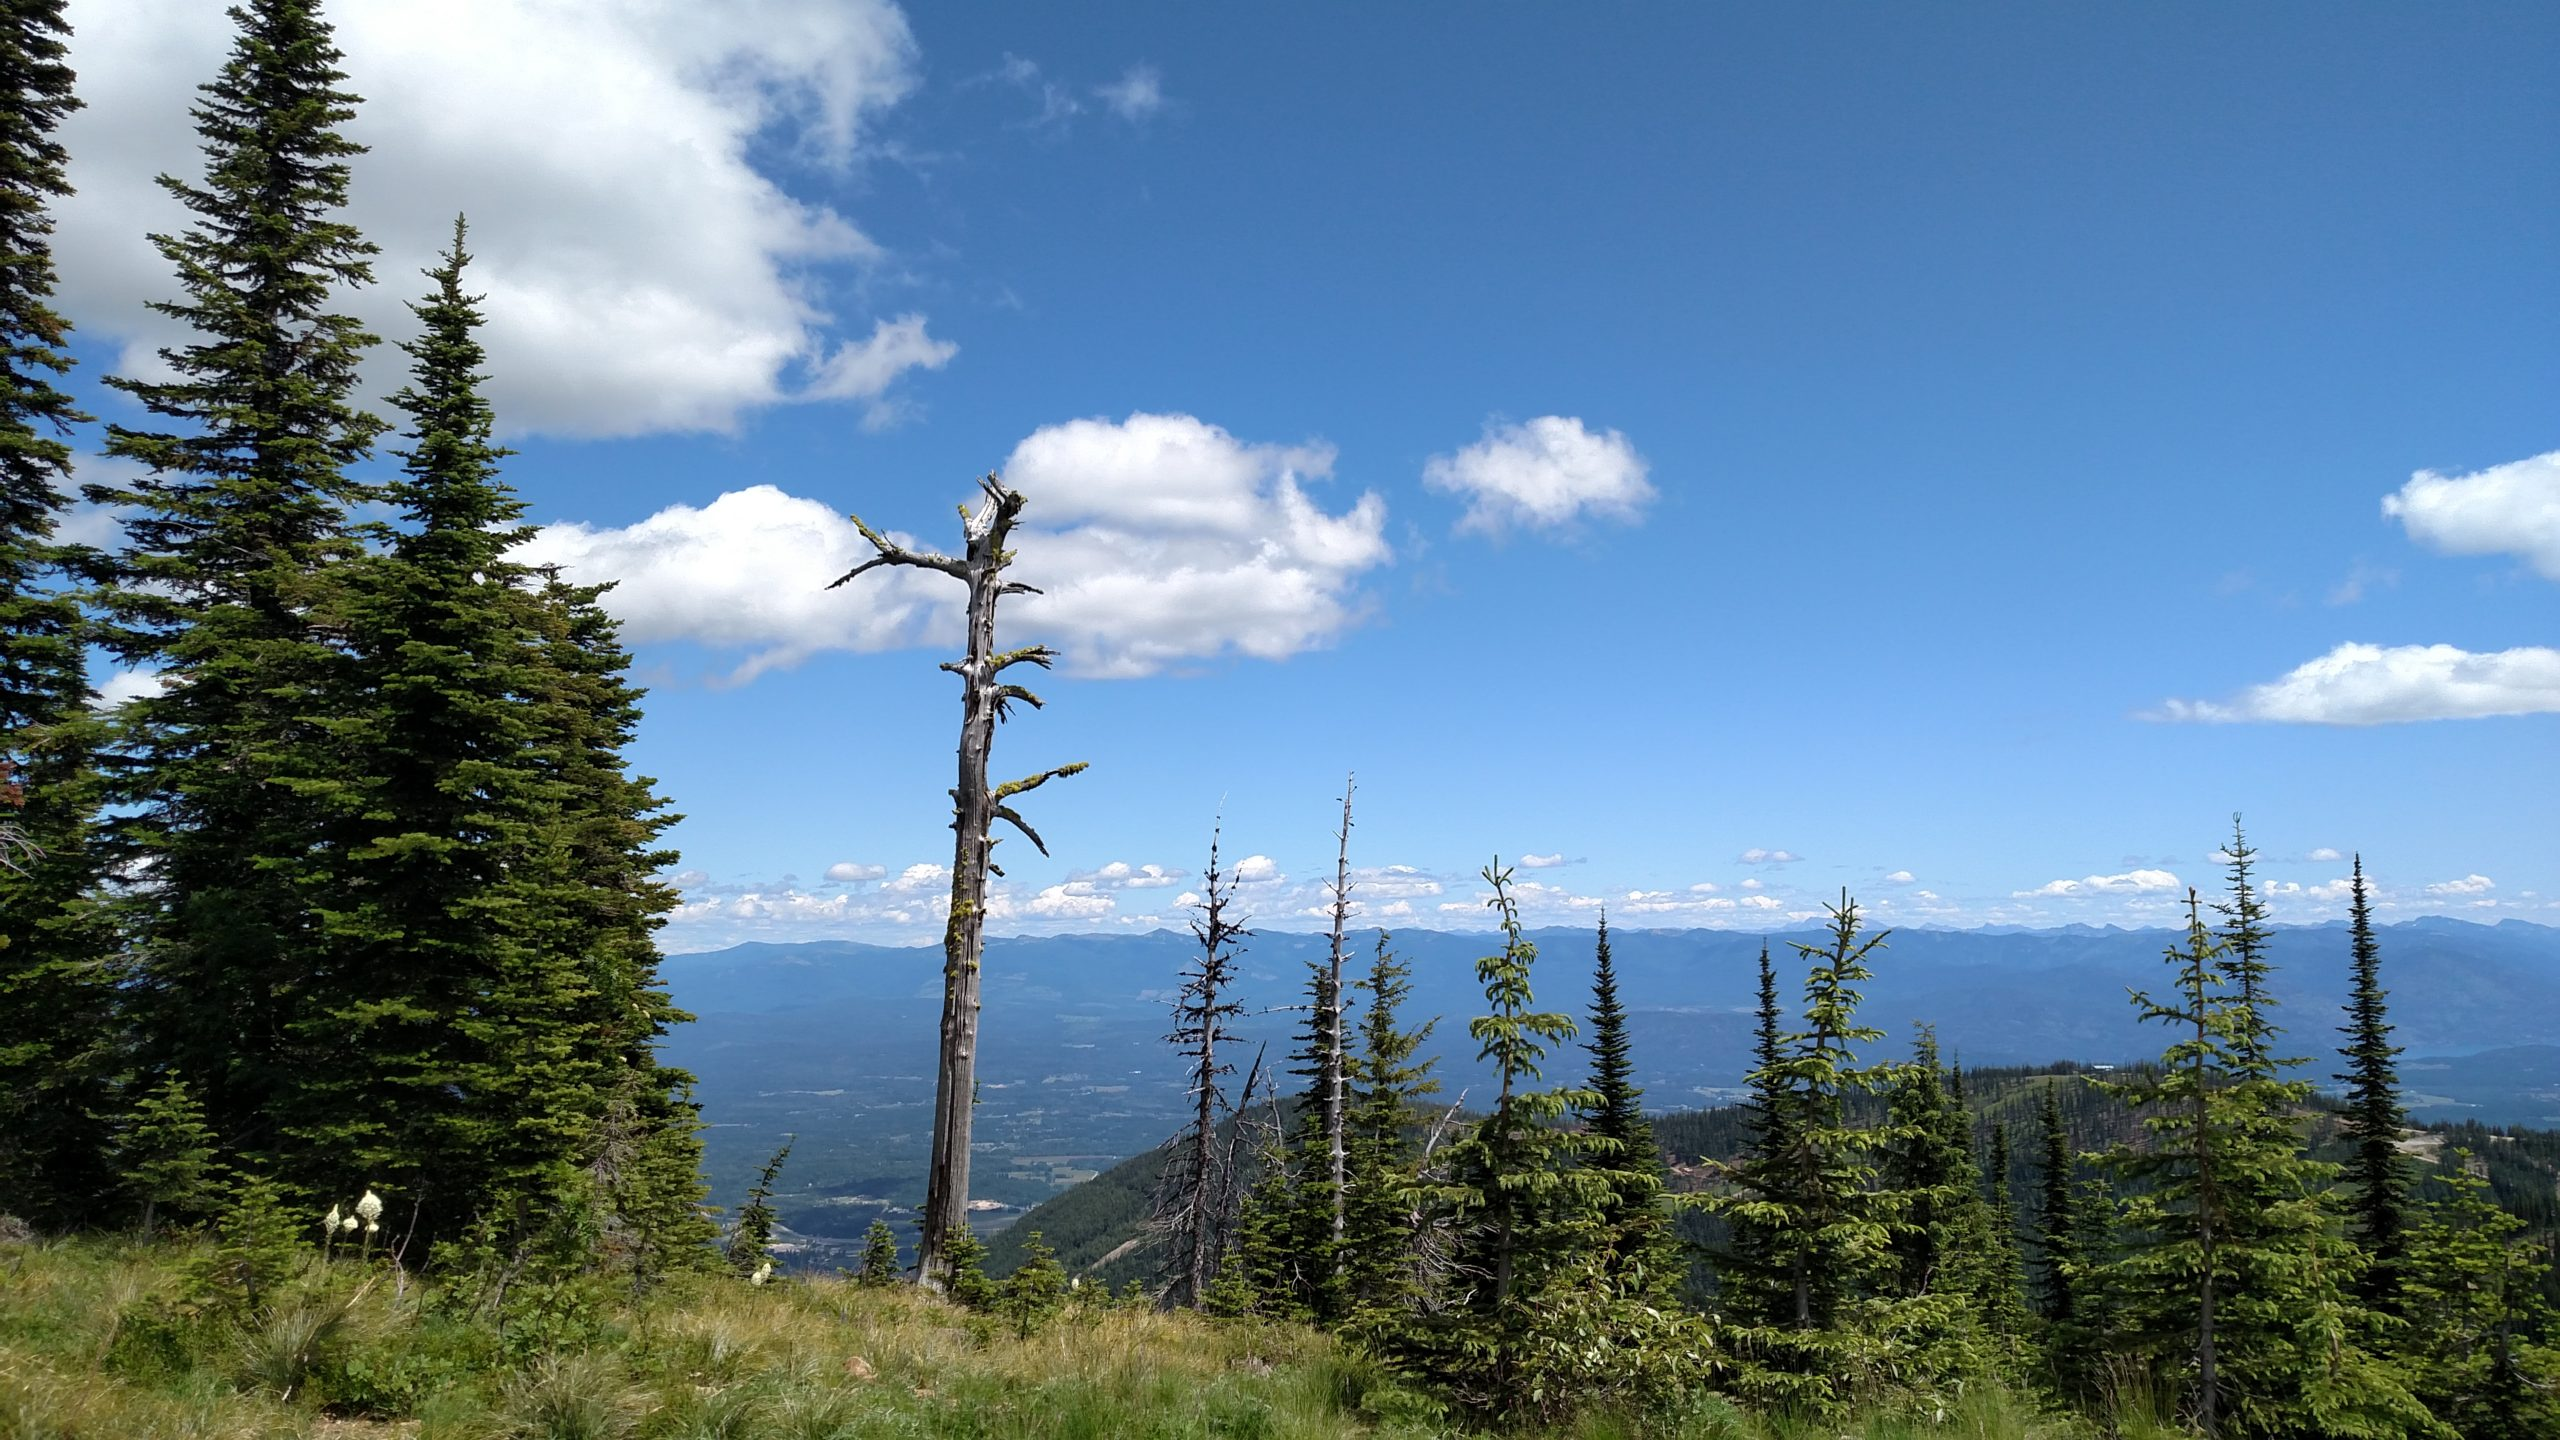 view from a mountain ridge featuring dead tree standing alone